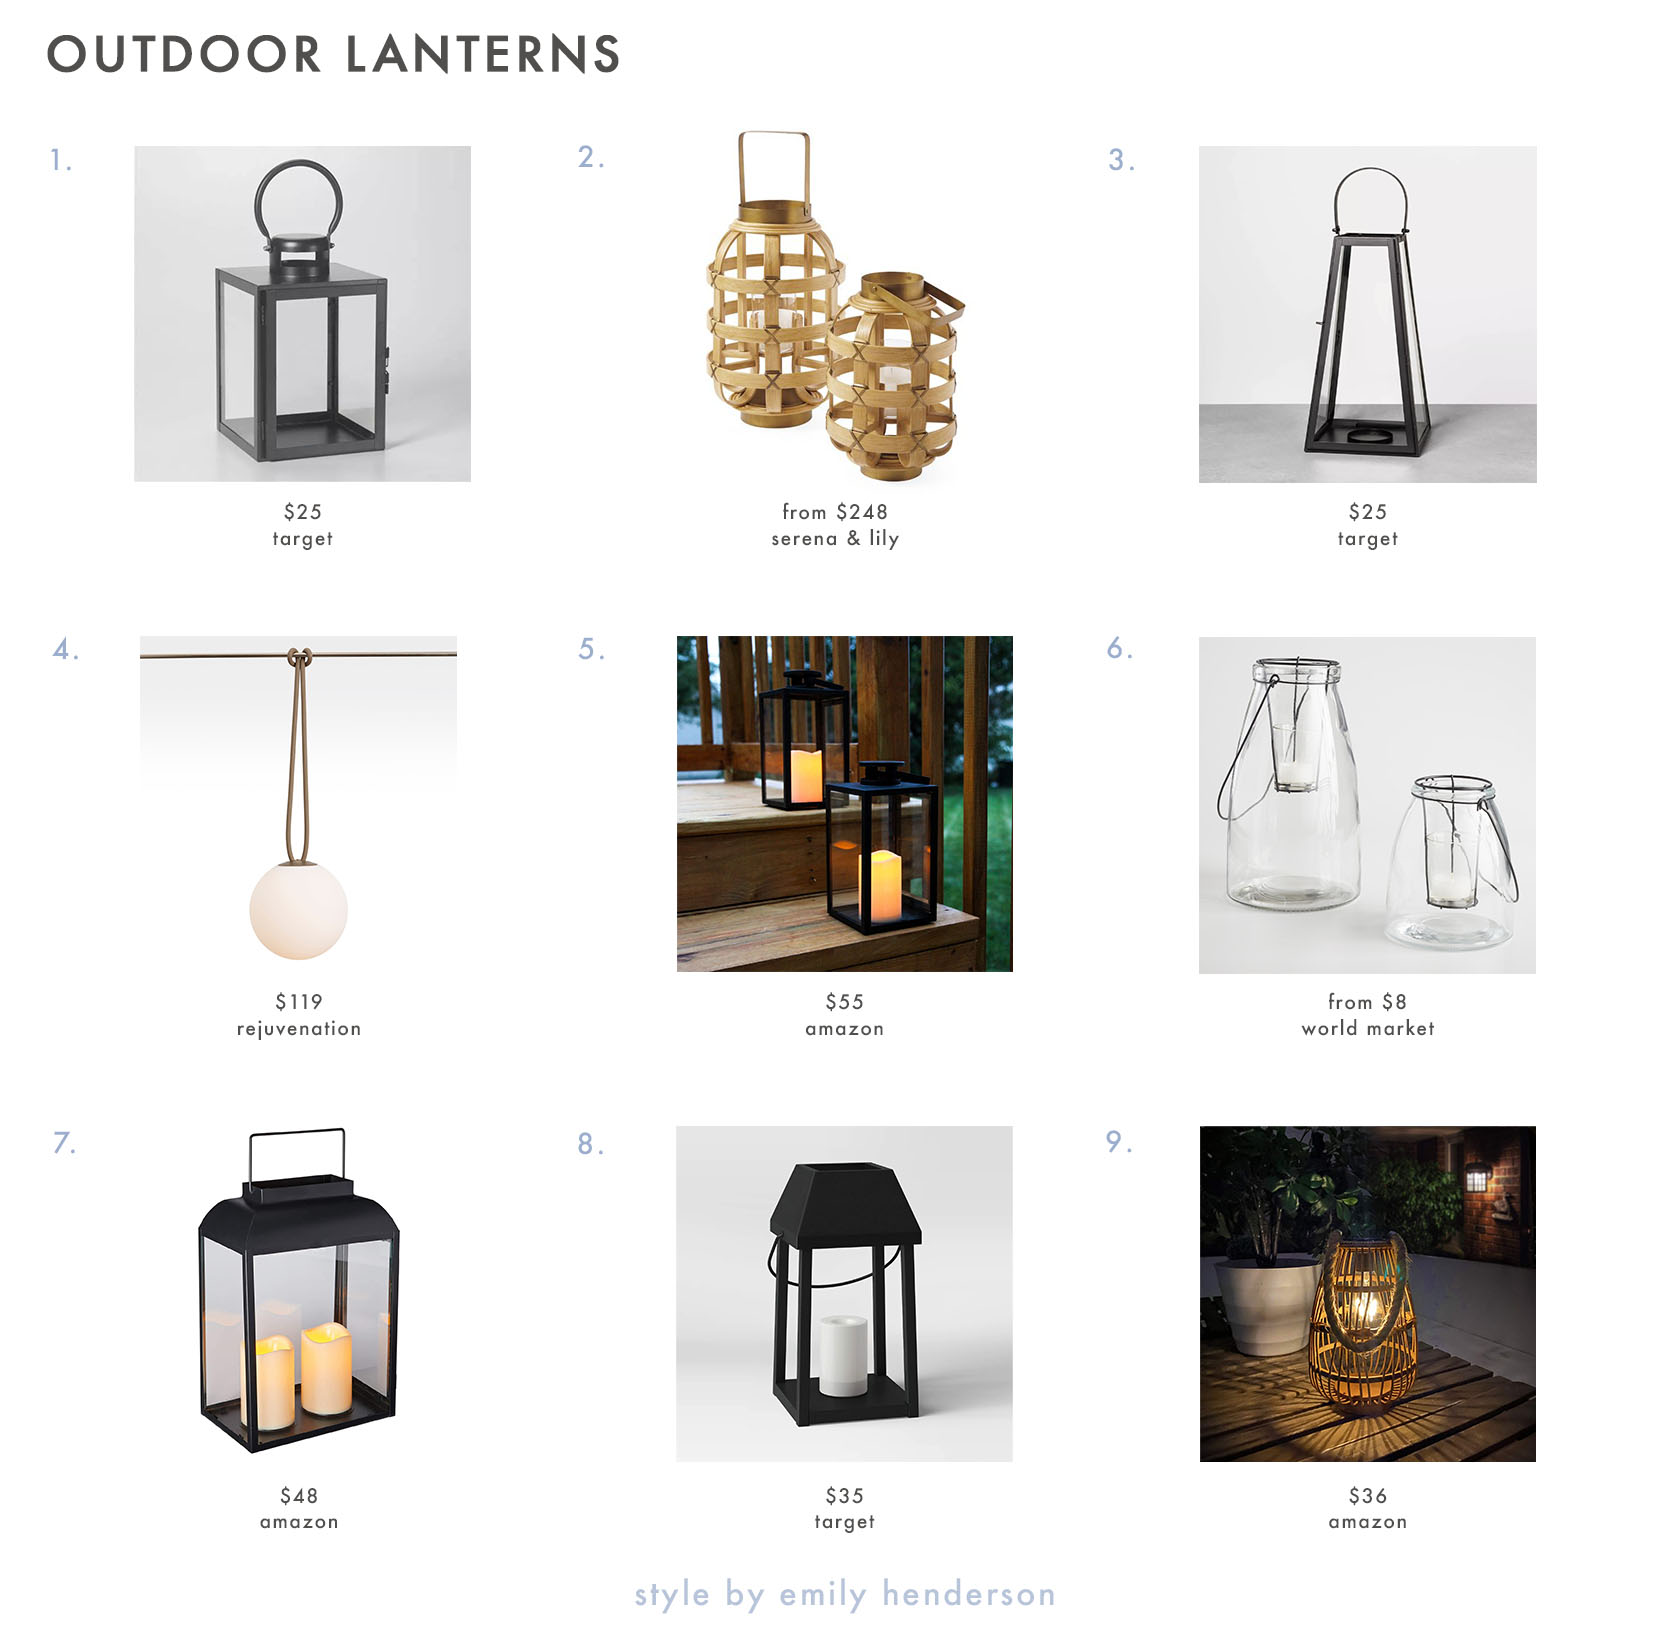 The Warm Weather May Be Fleeting But We Still Want To Stay Outside - 6 Elements For Creating A Cozy Outdoor Winter Lounge Best Children's Lighting & Home Decor Online Store